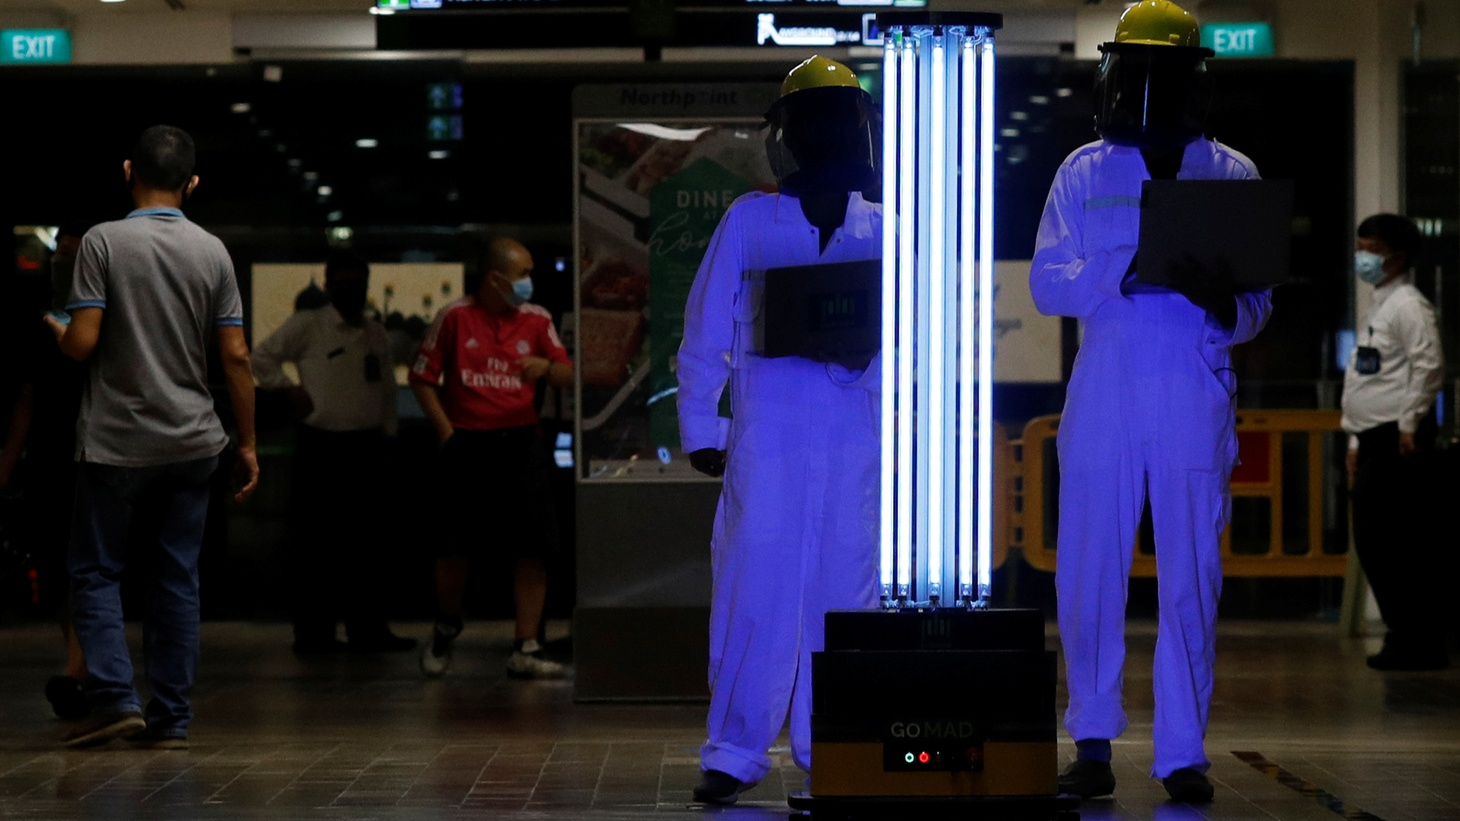 An autonomous mobile robot that disinfects surfaces with ultraviolet light, known as Sunburst UV Bot, is deployed at Northpoint City shopping mall amid the coronavirus disease (COVID-19) outbreak in Singapore, May 20, 2020.